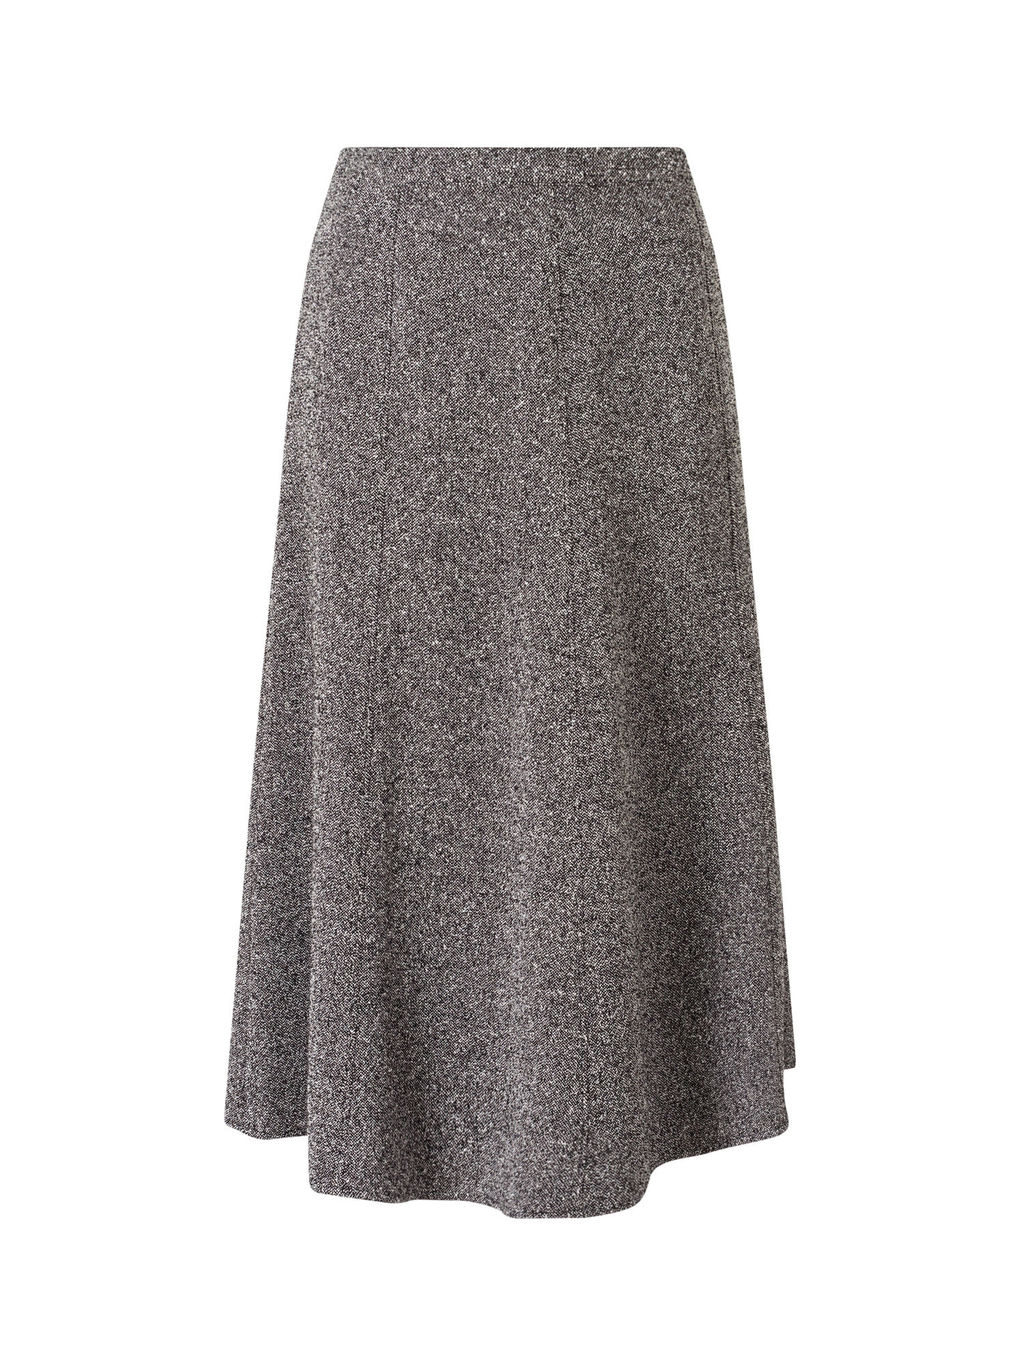 Tweed A Line Skirt - length: calf length; pattern: plain; fit: loose/voluminous; waist: mid/regular rise; predominant colour: mid grey; occasions: casual; style: a-line; fibres: polyester/polyamide - mix; pattern type: fabric; texture group: tweed - light/midweight; wardrobe: basic; season: a/w 2016